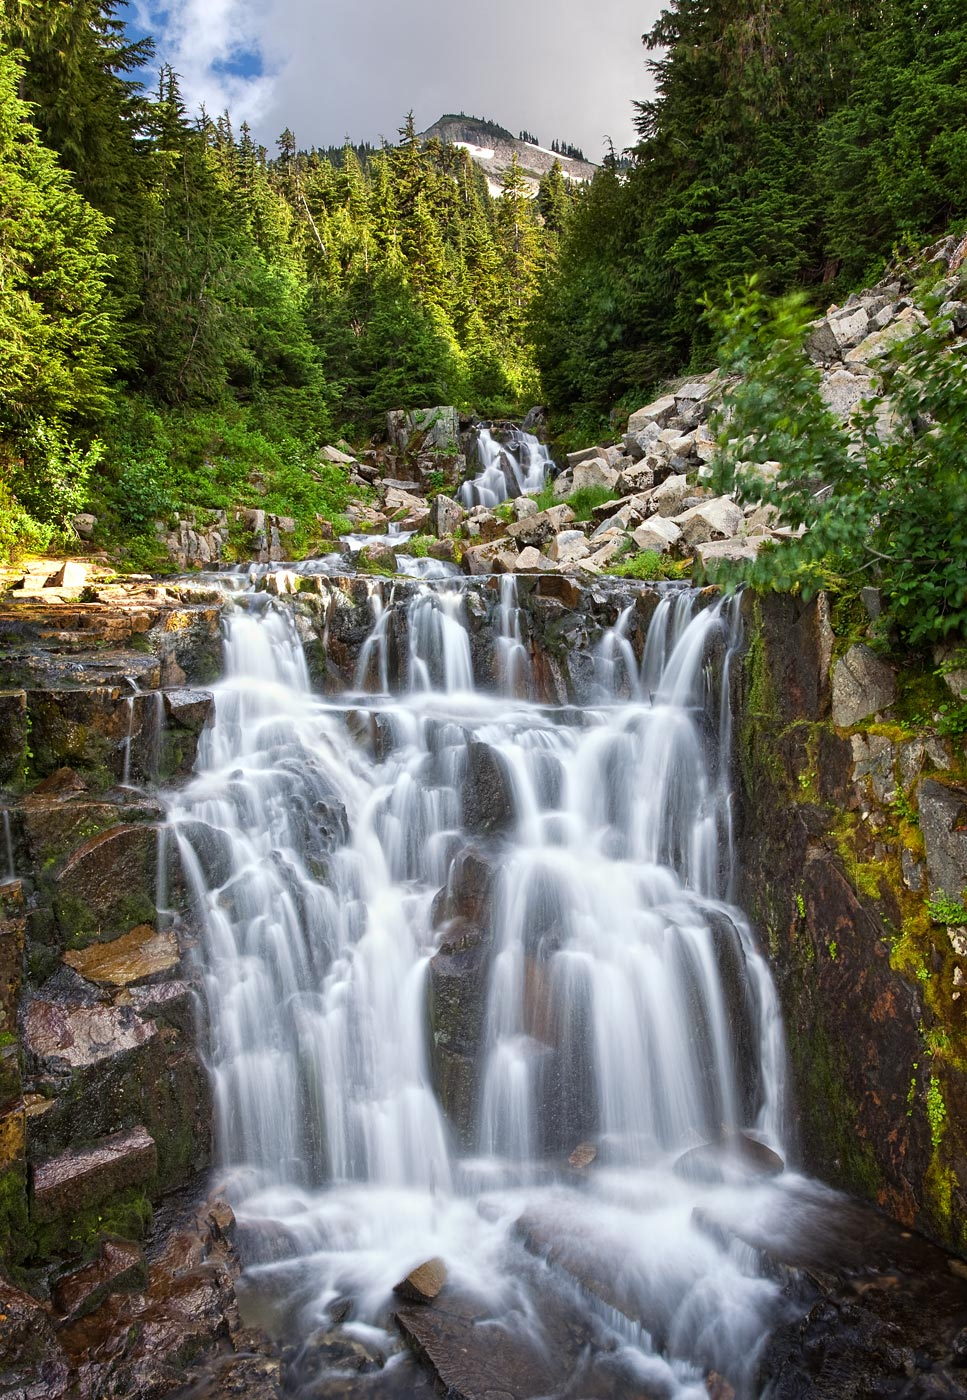 Mount-Rainier-National-Park-ABP-Sunbeam-Falls.jpg